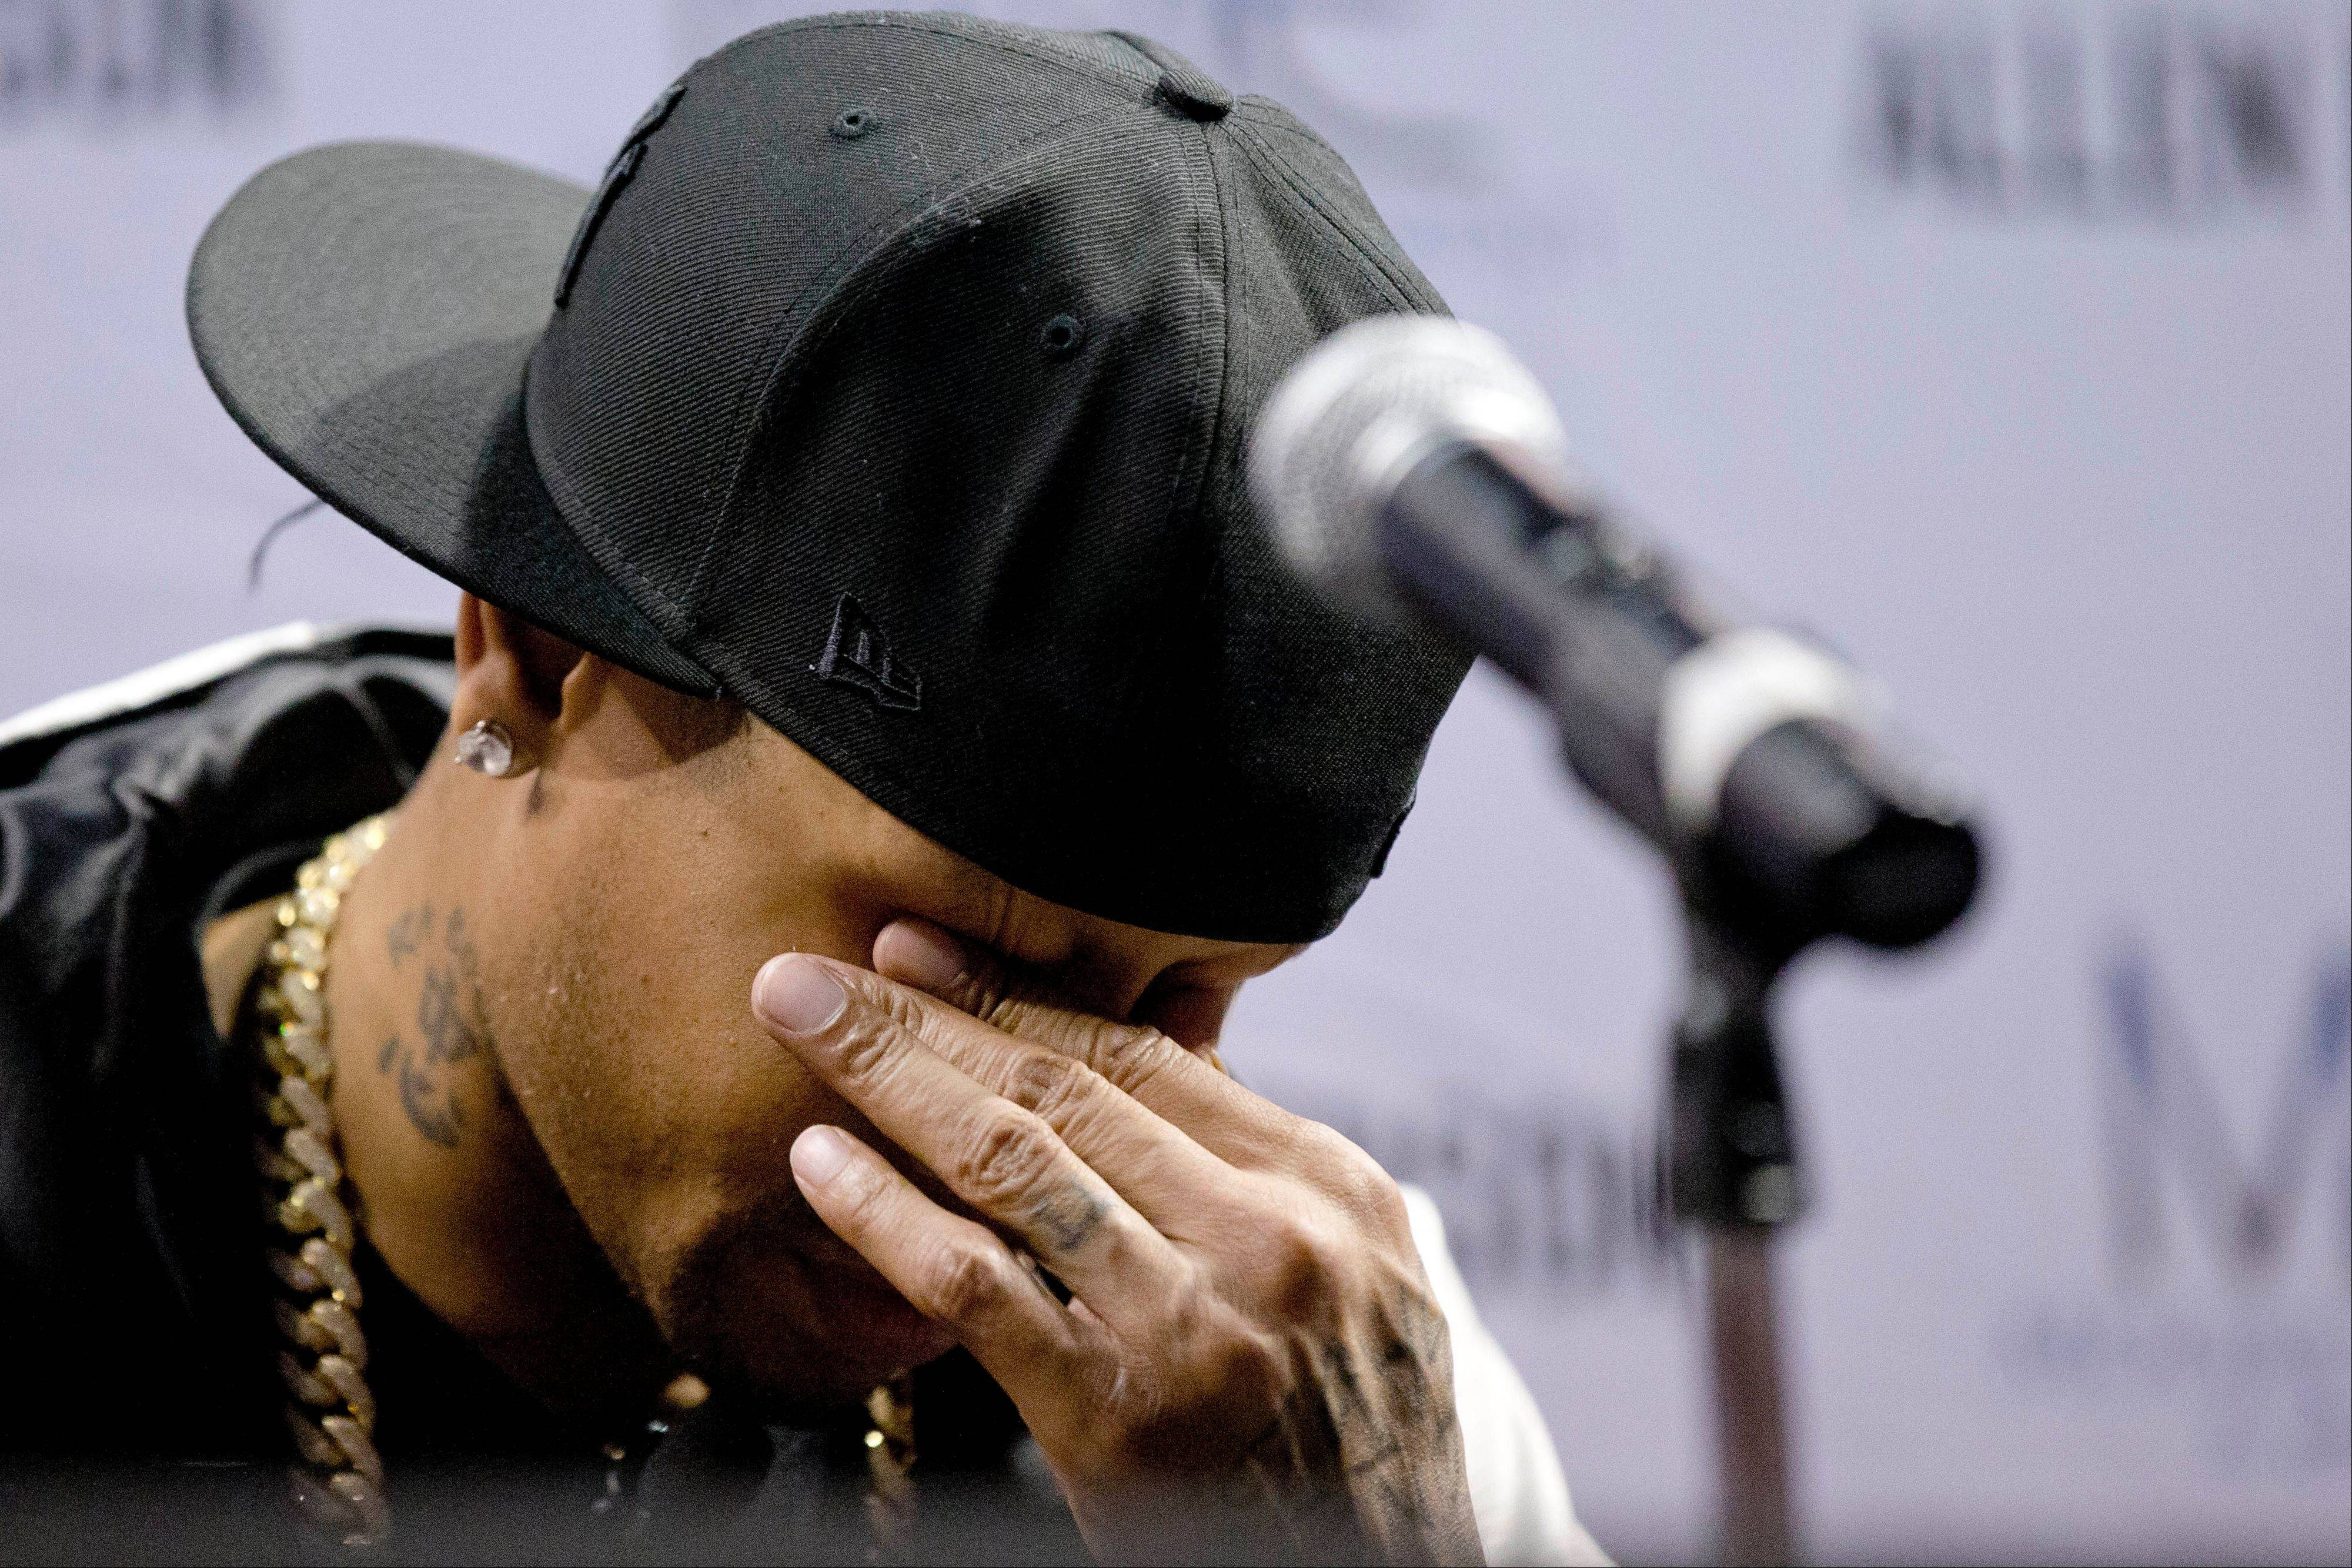 Former Philadelphia 76ers basketball player Allen Iverson wipes his eyes during a news conference Wednesday, Oct. 30, 2013, in Philadelphia. Iverson officially retired from the NBA, ending a 15-year career during which he won the 2001 MVP award and four scoring titles. Iverson retired in Philadelphia where he had his greatest successes and led the franchise to the 2001 NBA finals.